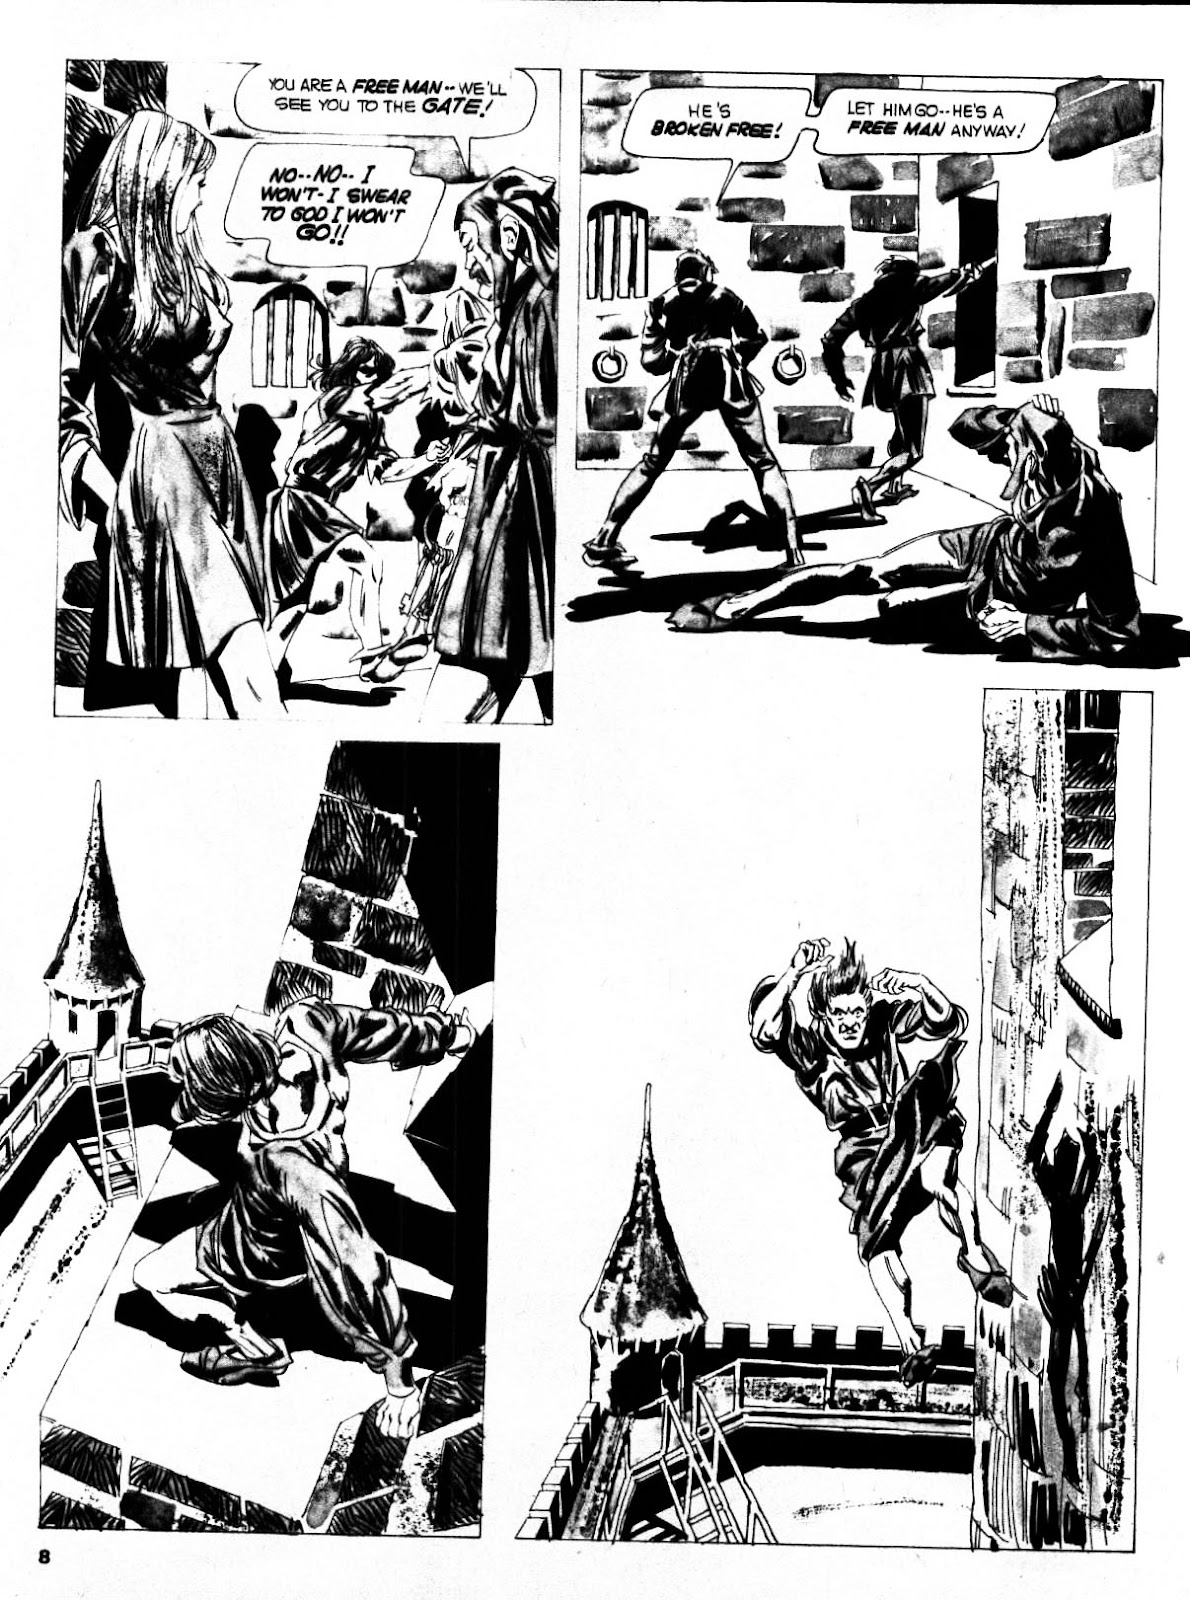 Nightmare (1970) issue 21 - Page 8